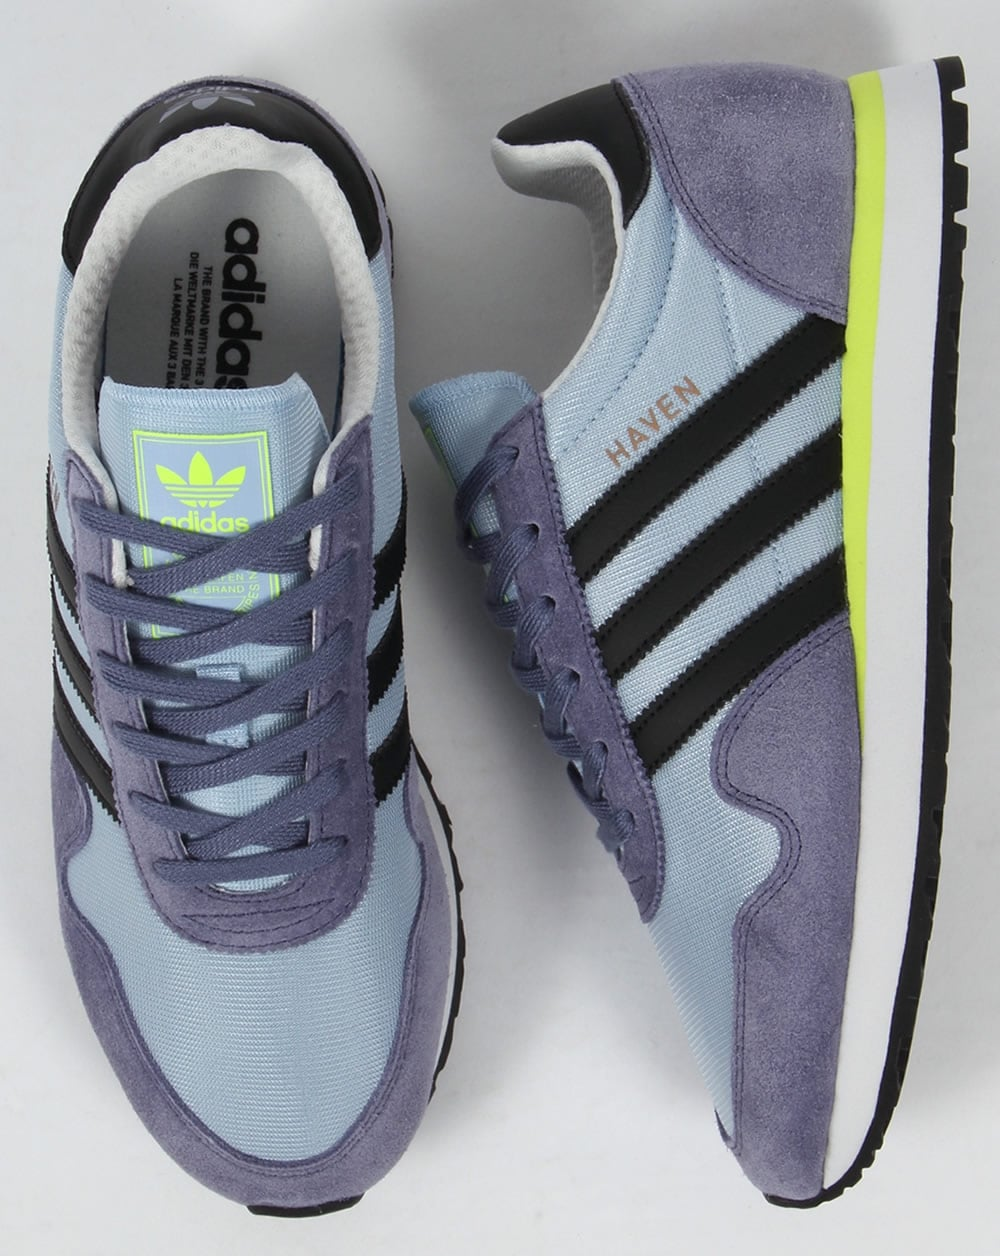 eceaf62fa37 Adidas Haven Trainers Easy Blue Black Yellow